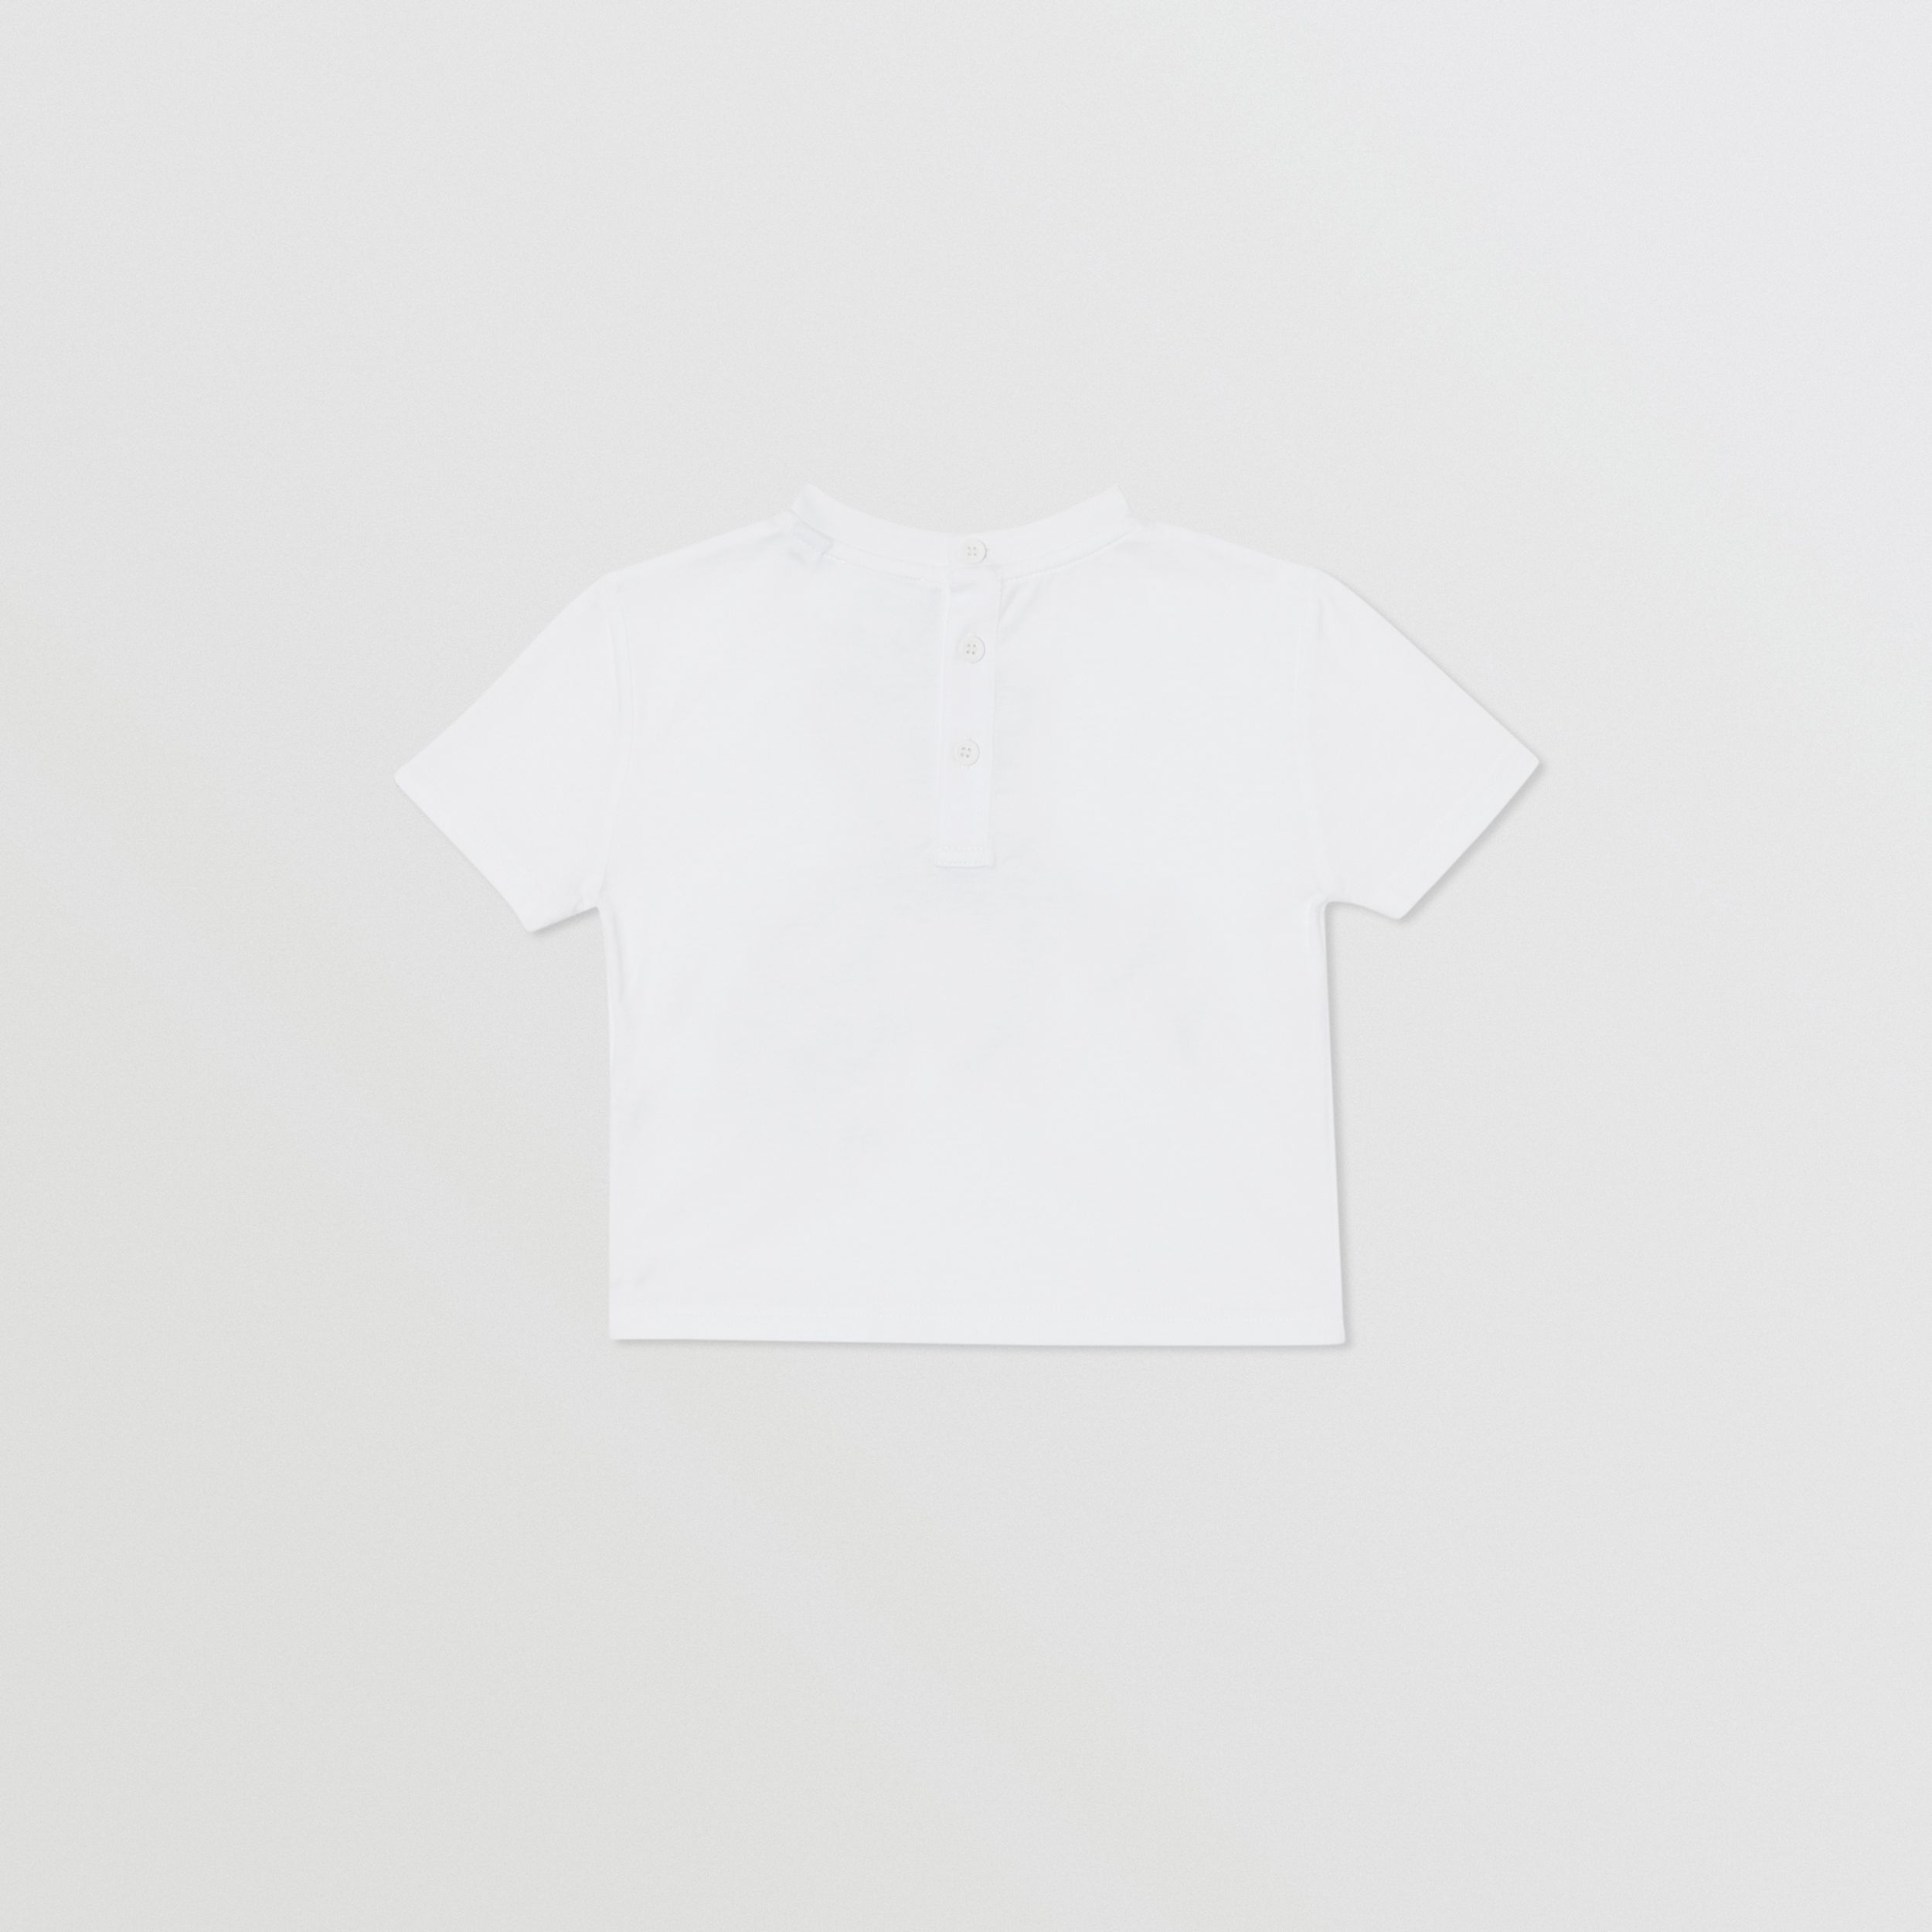 Thomas Bear Appliqué Cotton T-shirt in White - Children | Burberry - 4